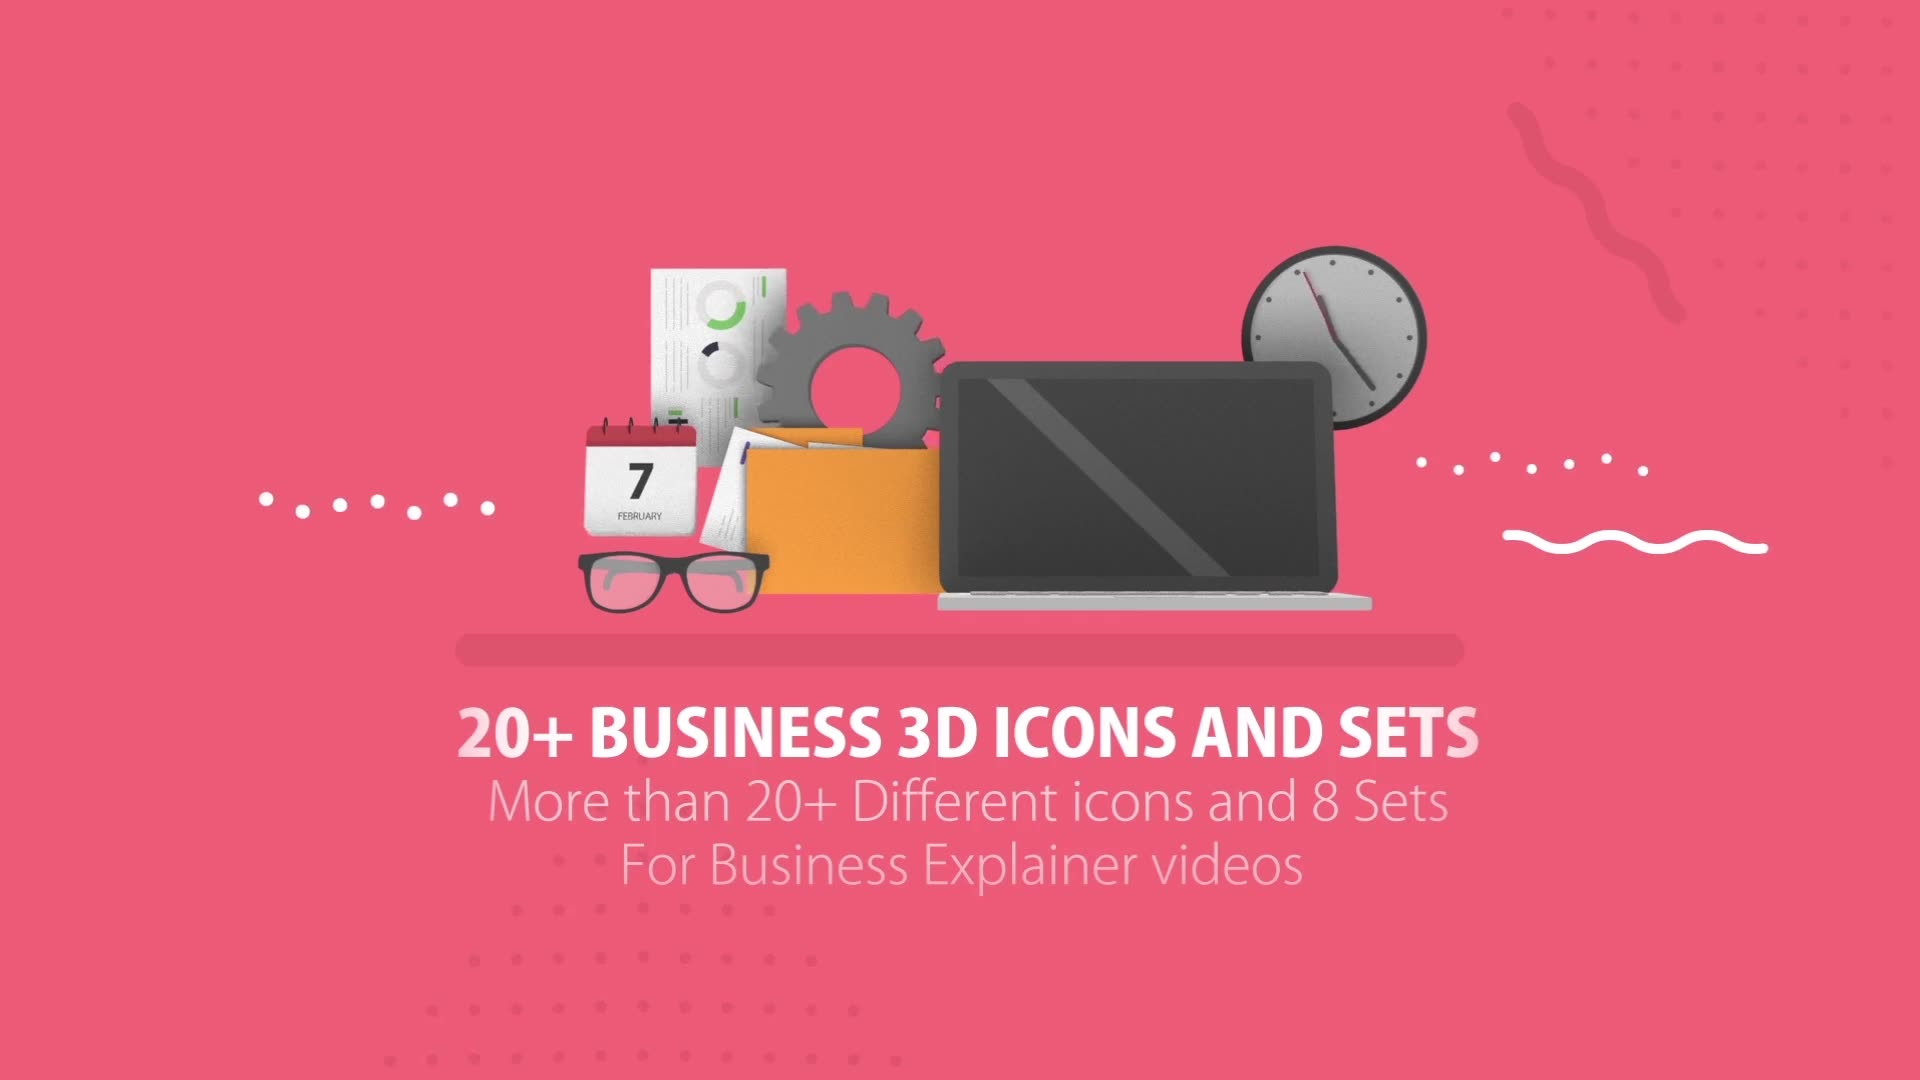 20+ Business 3D Icons - Download Videohive 19487454